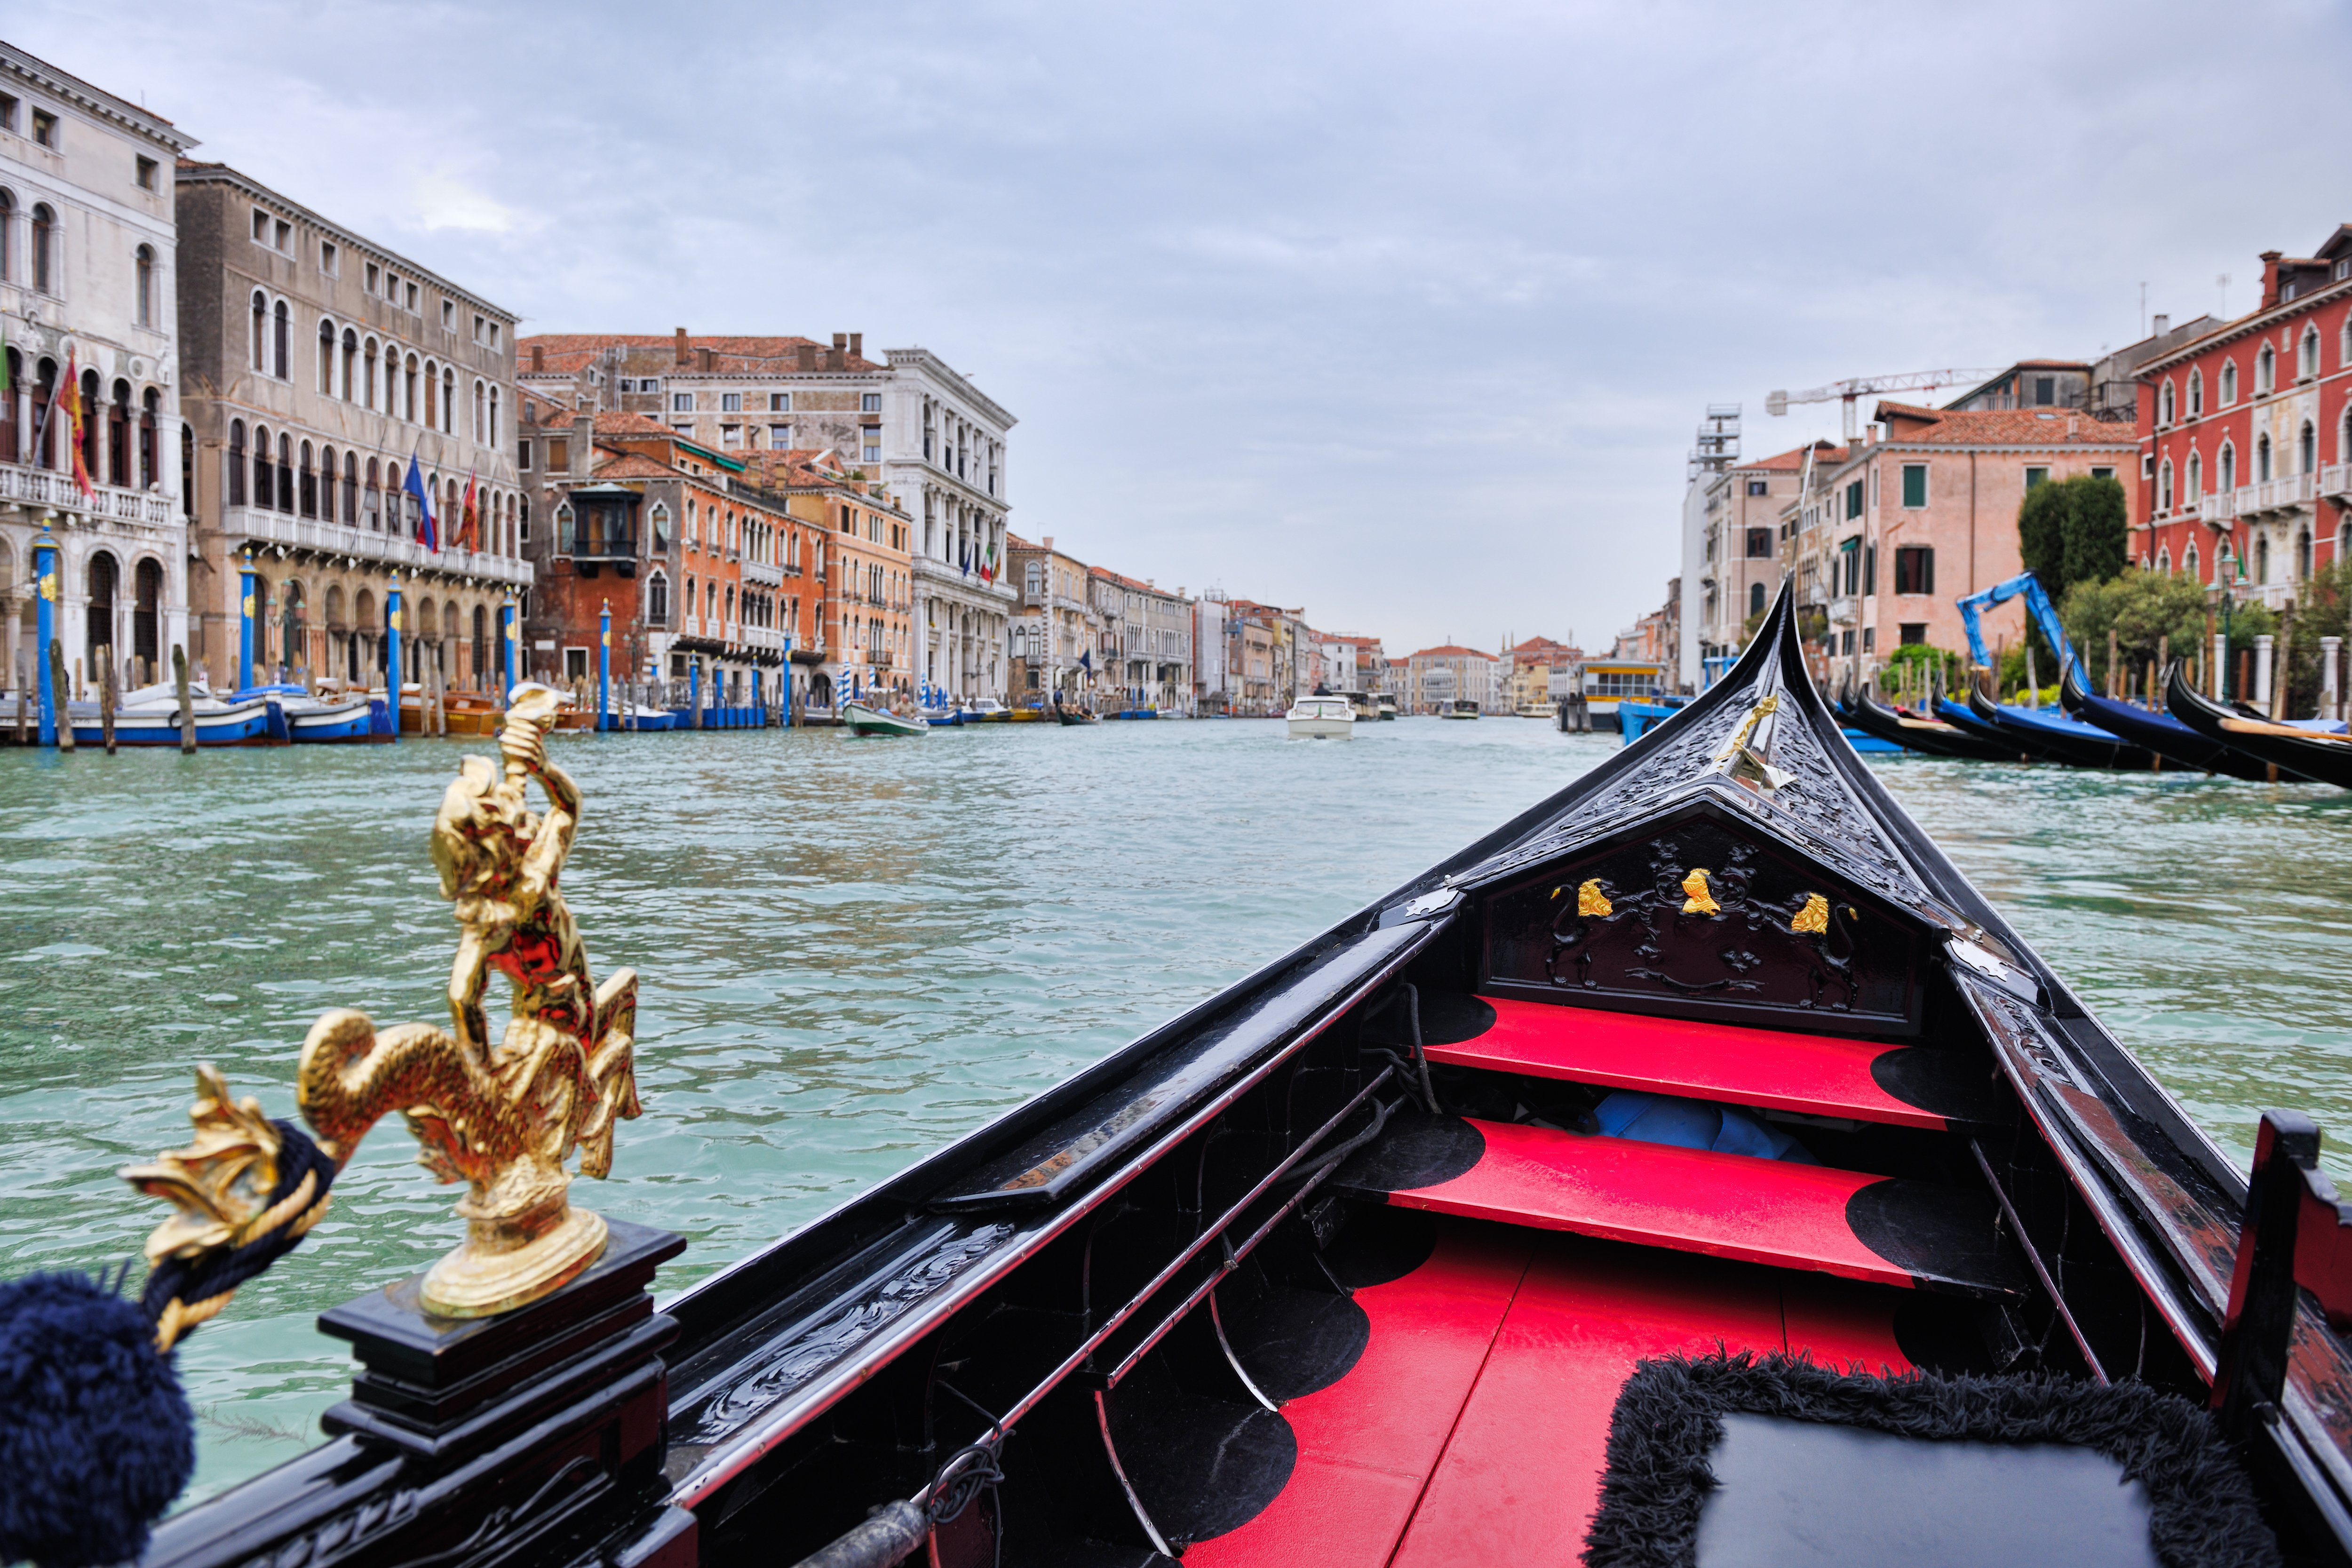 venice, beautiful romantic italian city on sea with great canal and go